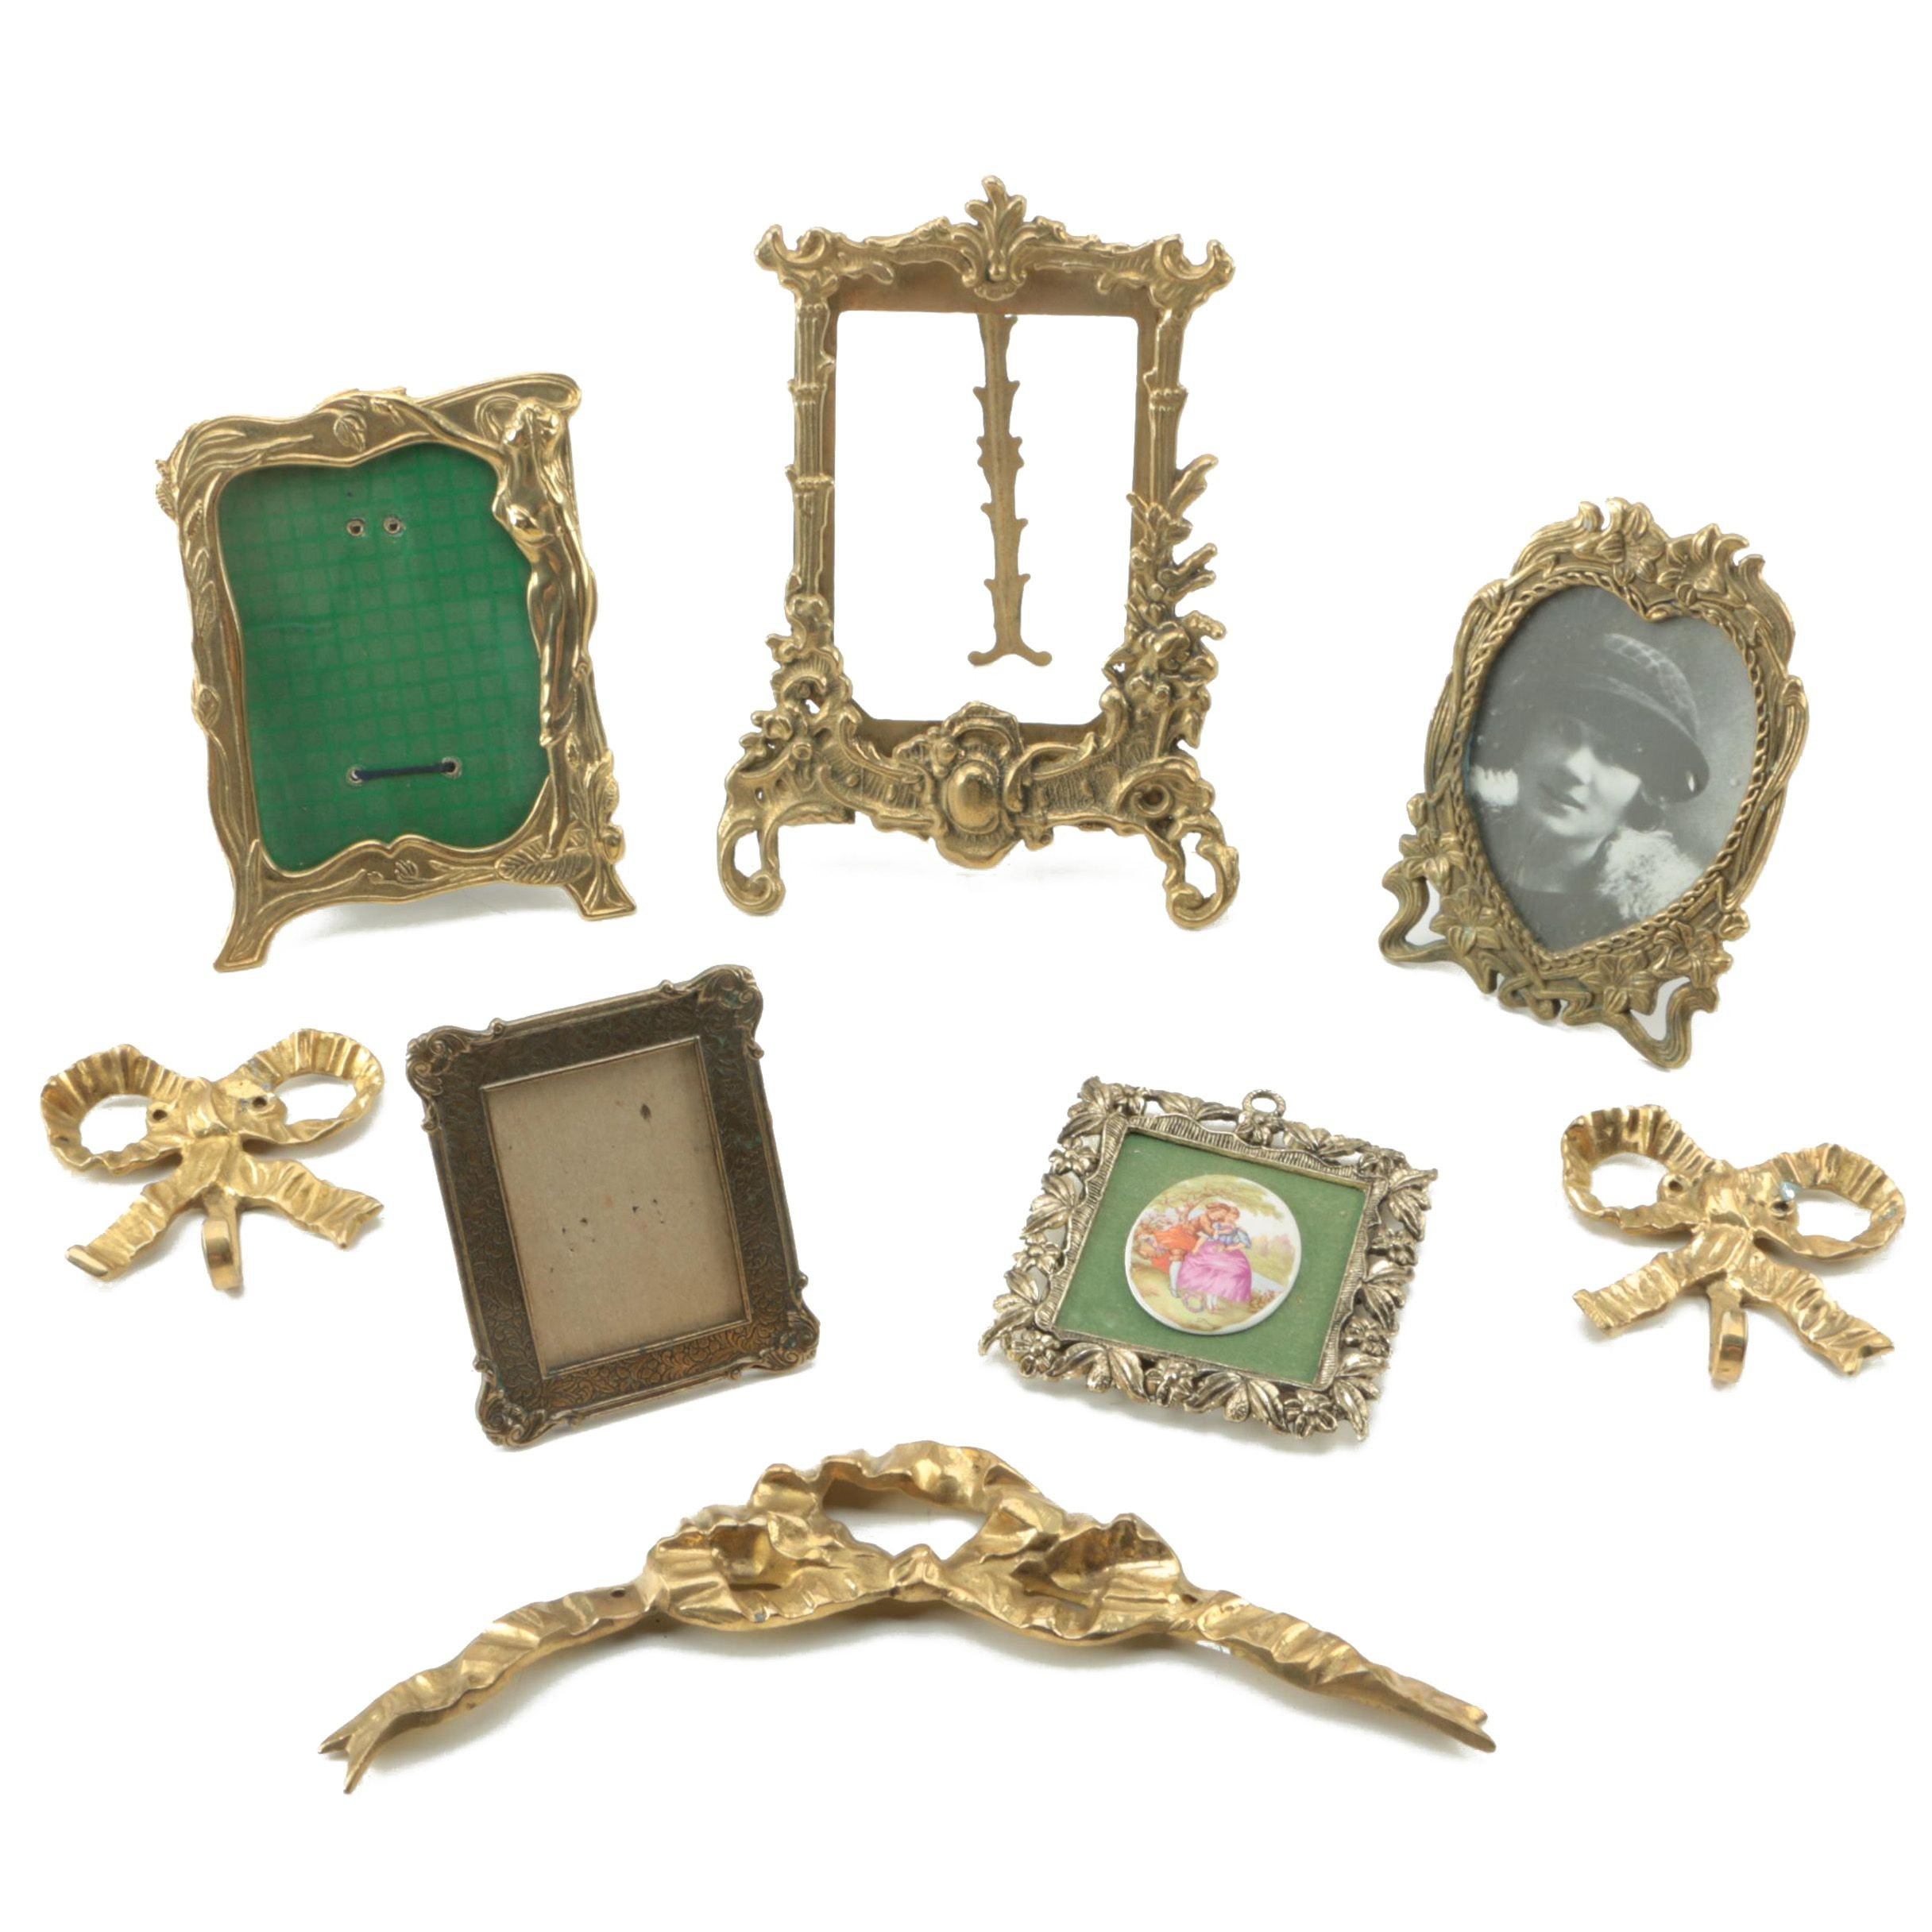 Vintage Brass Picture Frames and Decor Items